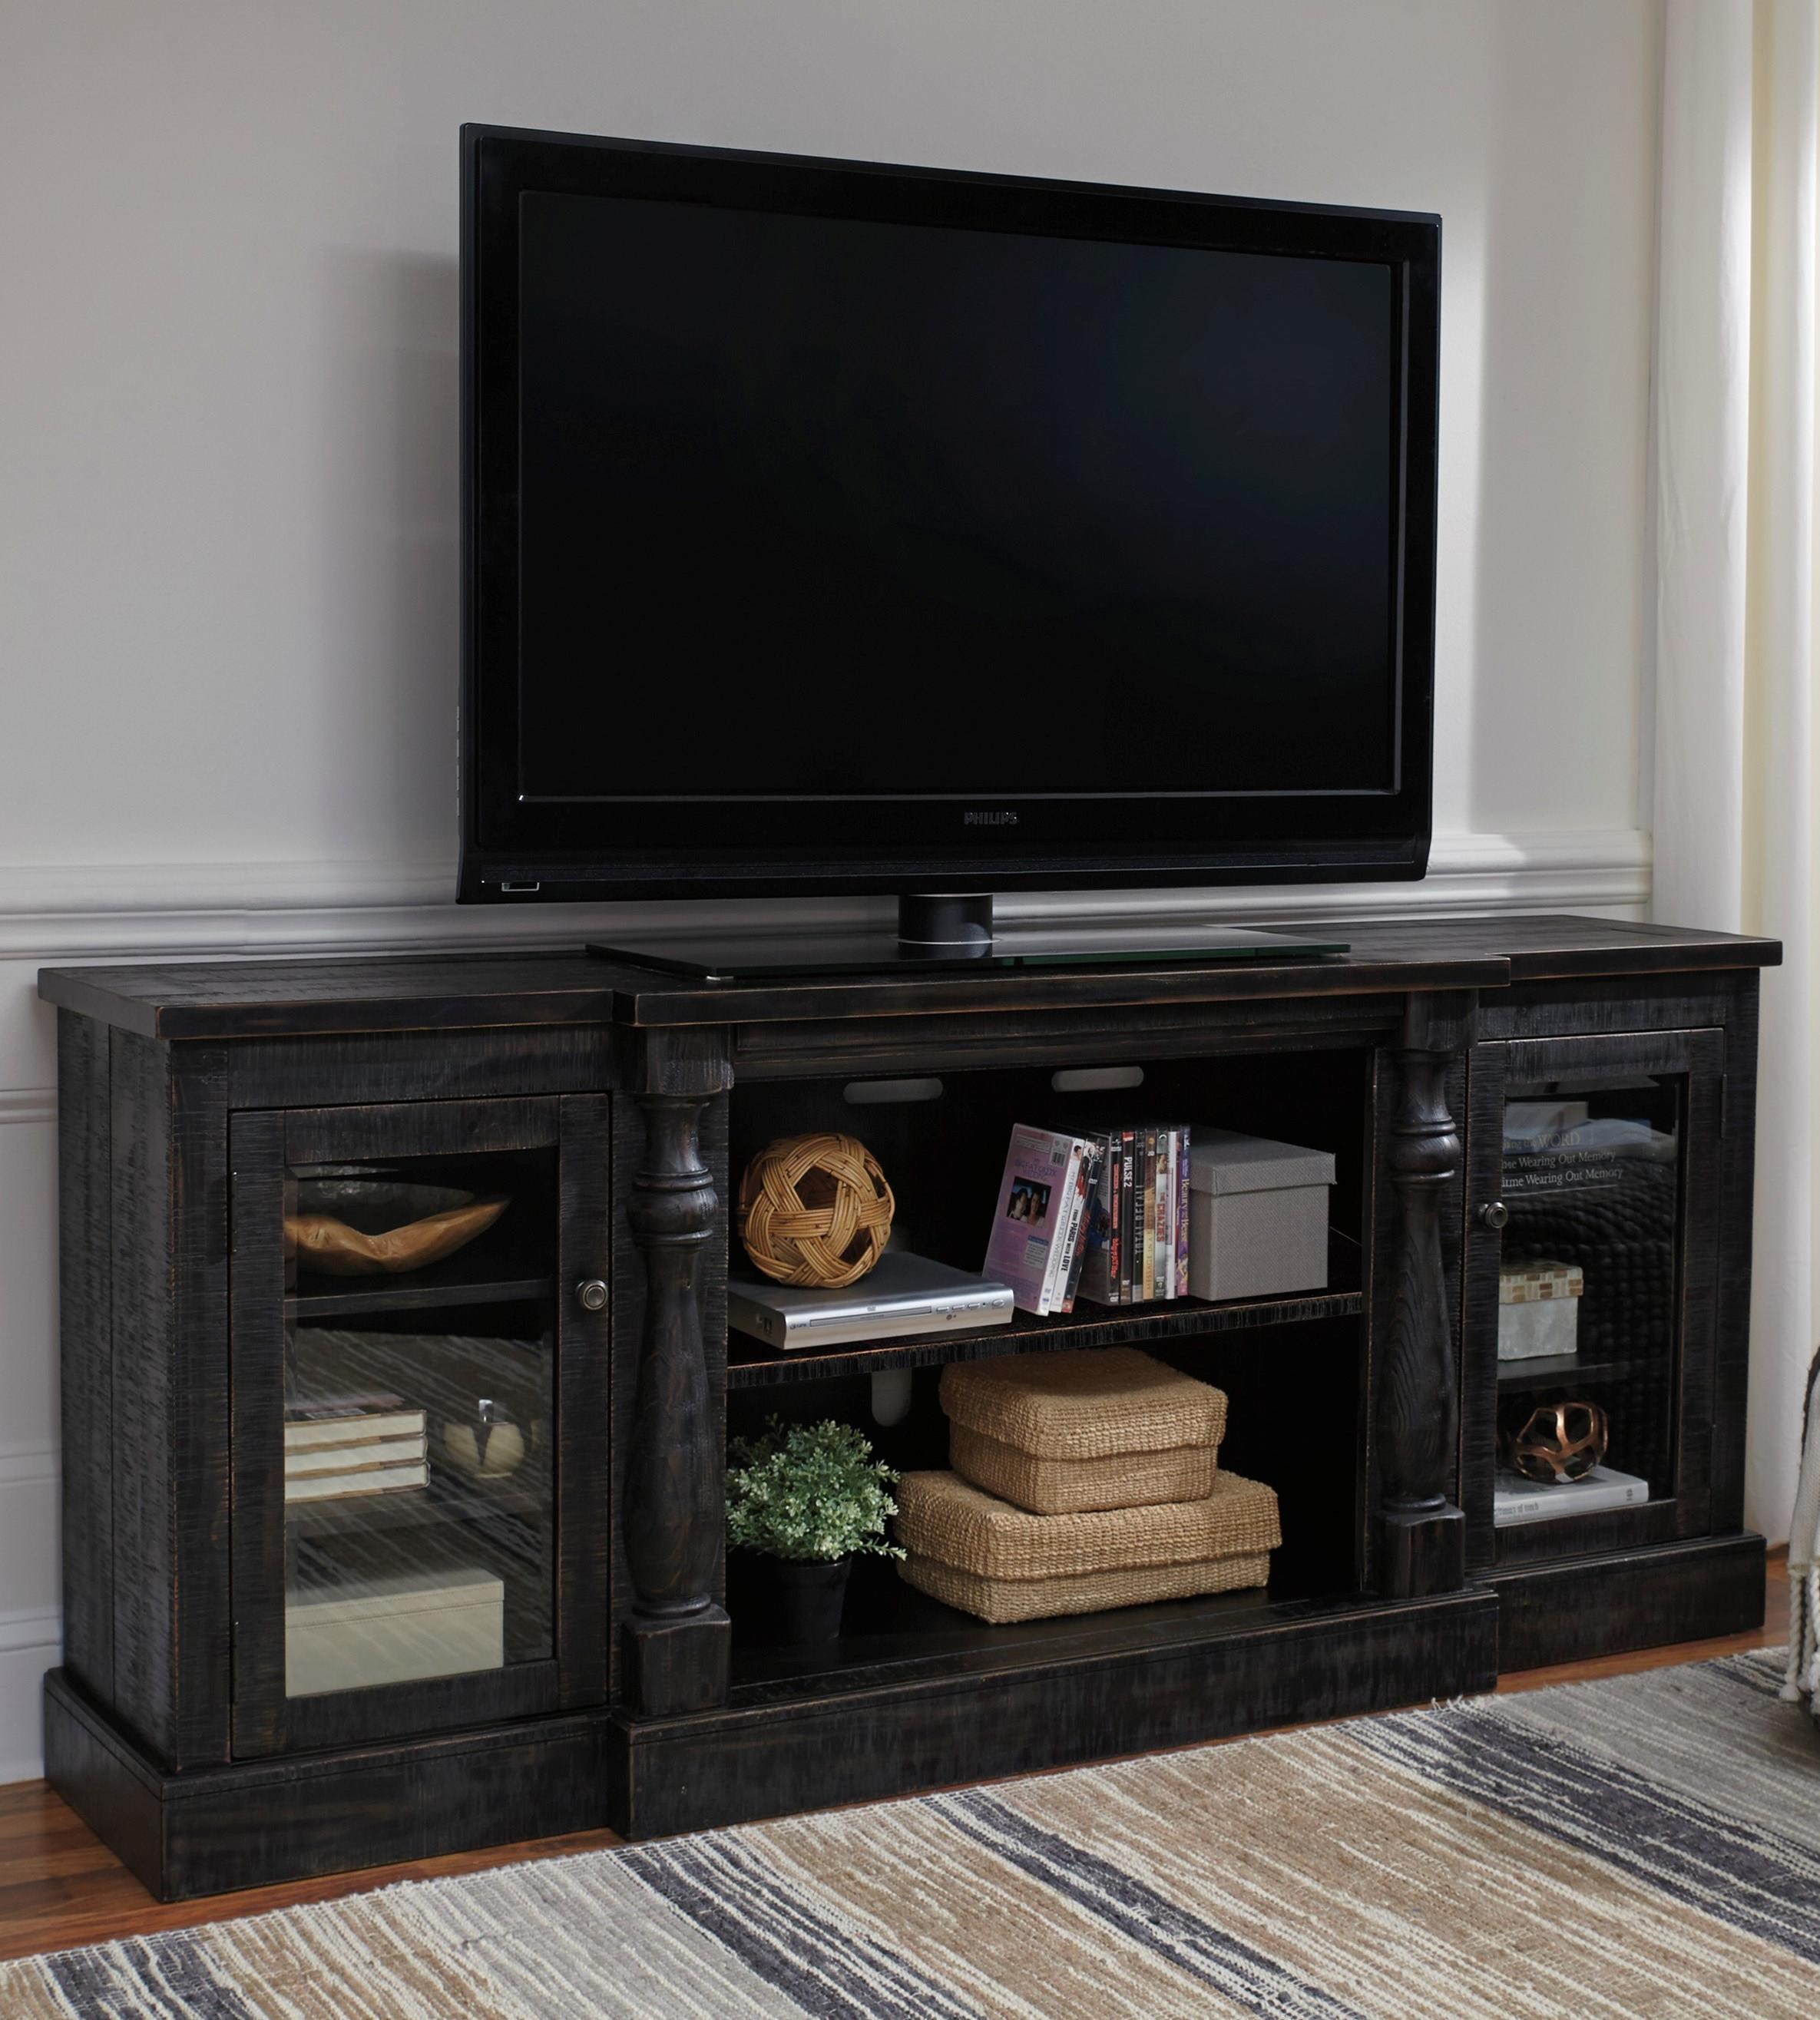 Mallacar XL TV Stand by Signature Design by Ashley at Furniture Fair - North Carolina